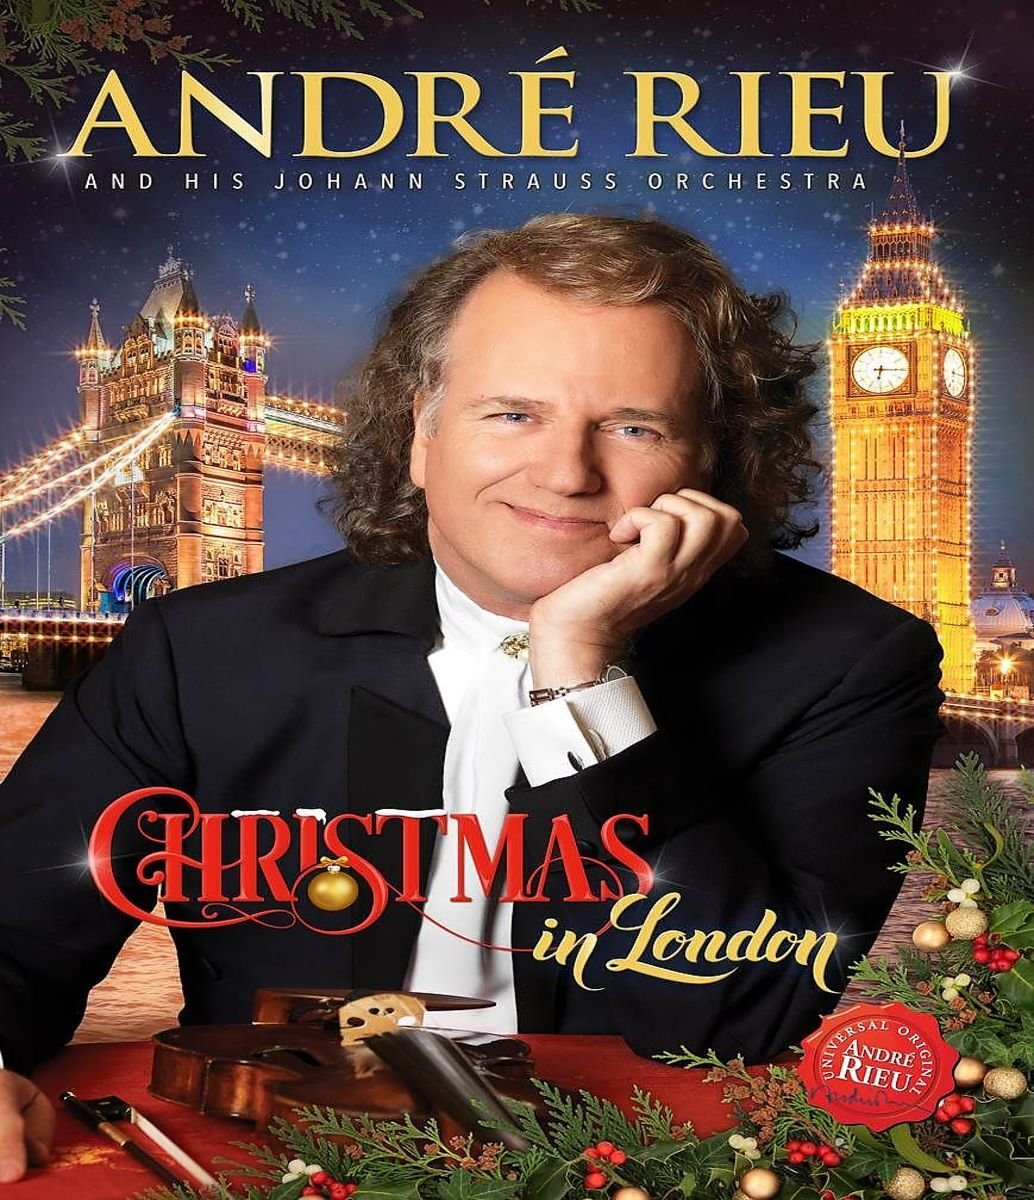 Andre Rieu – Christmas In London (2016) 720p+1080p MBluRay x264-TREBLE